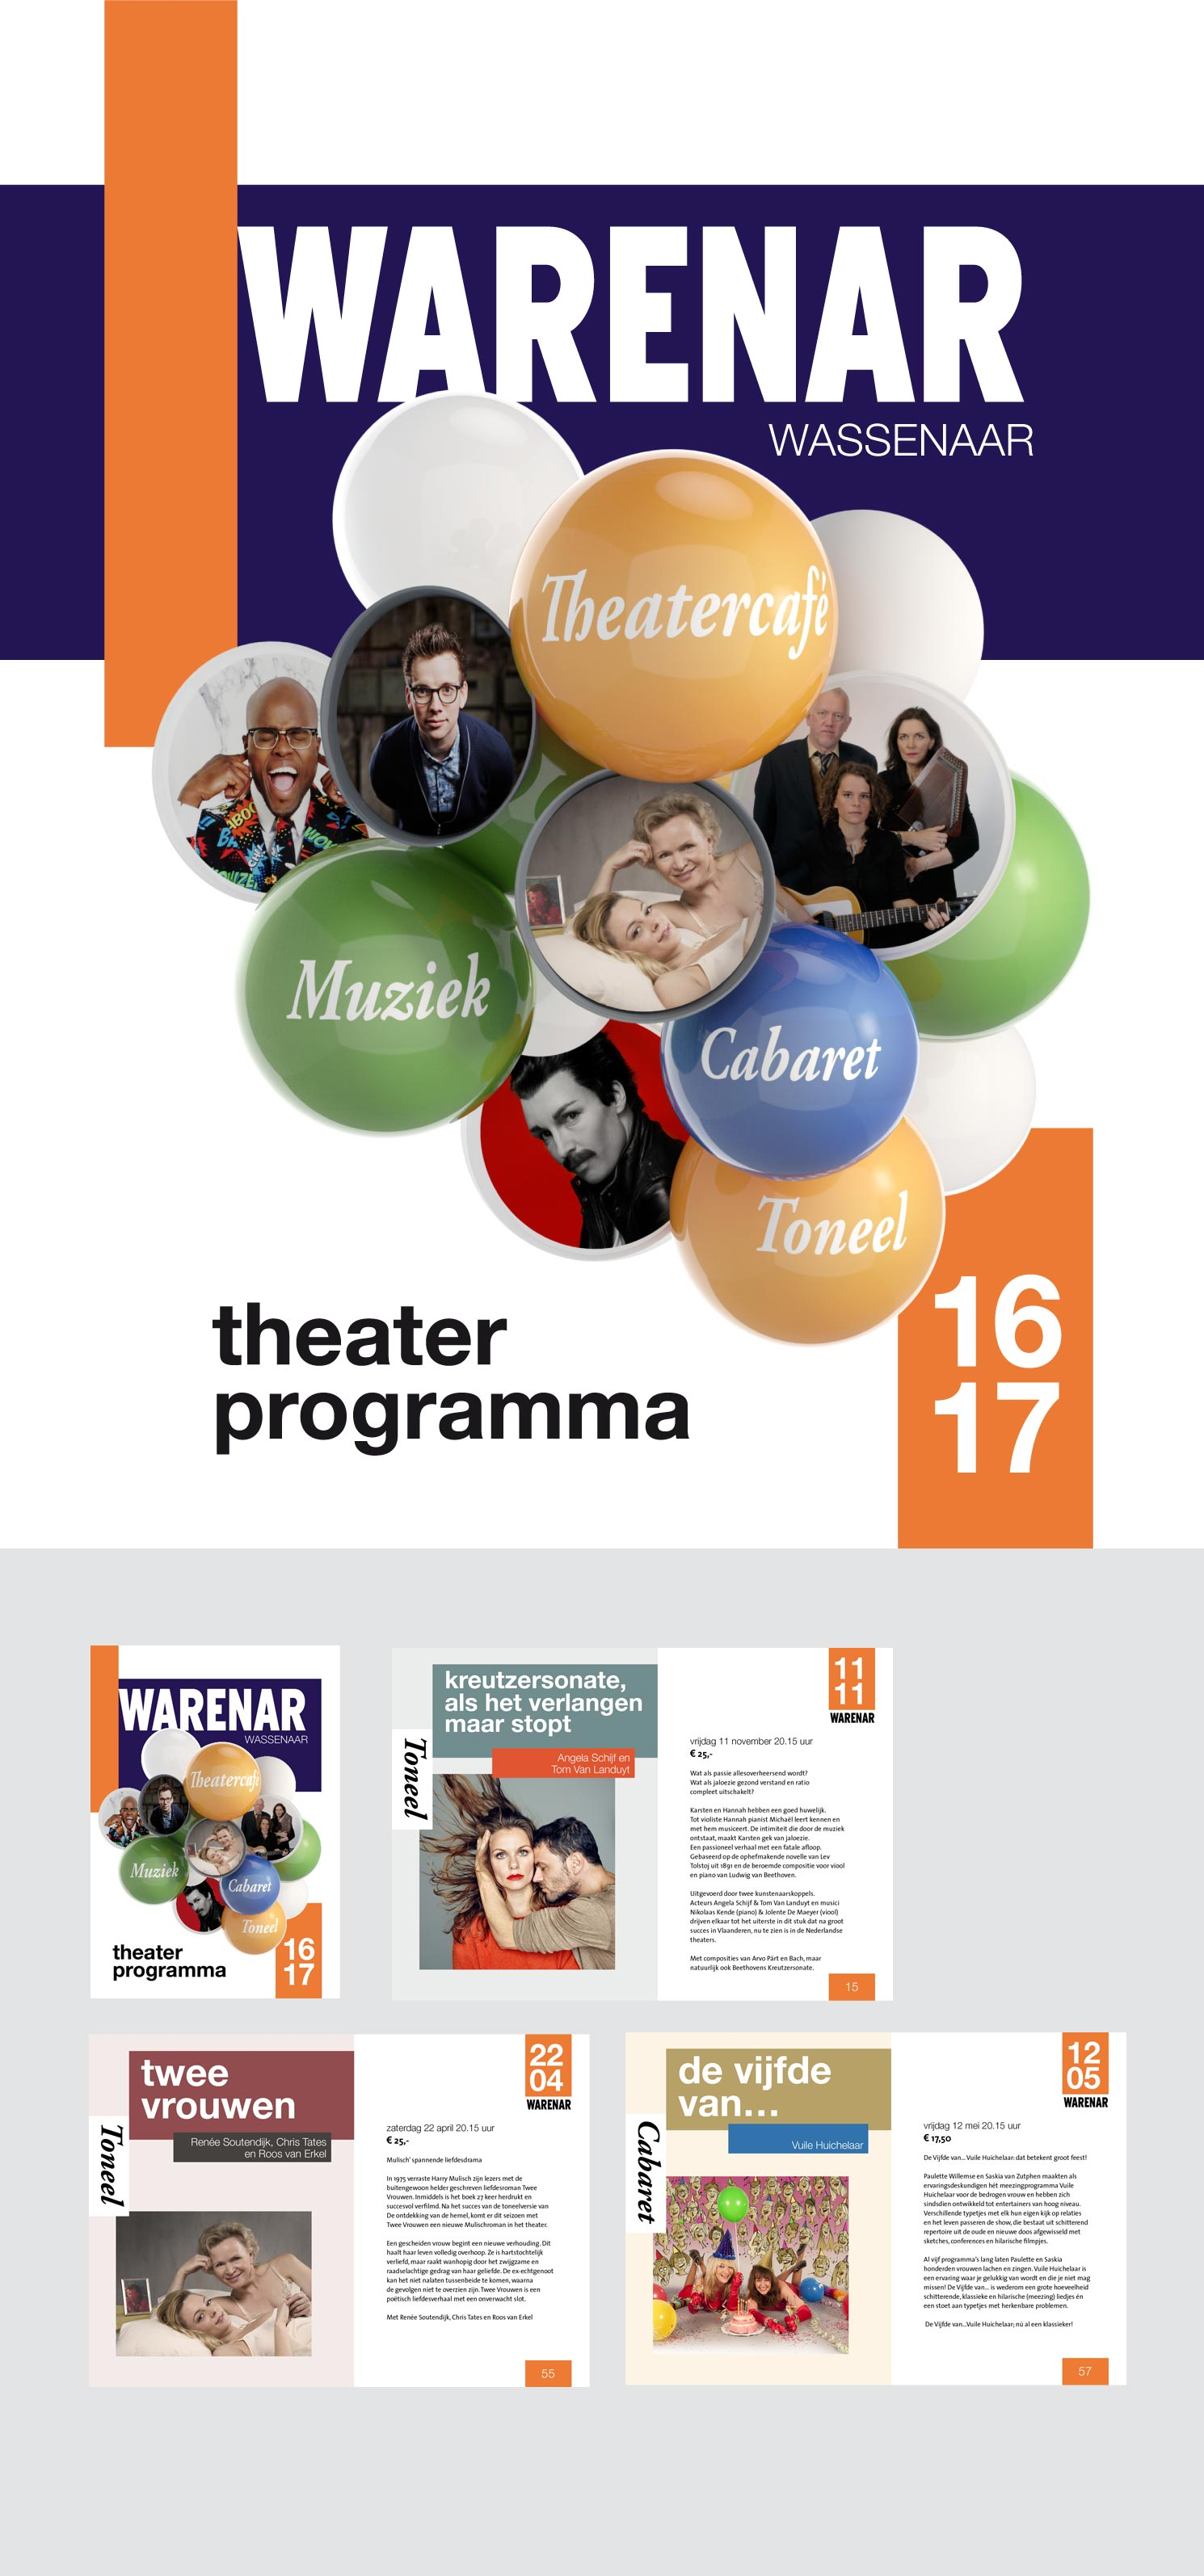 Theater programma Warenar